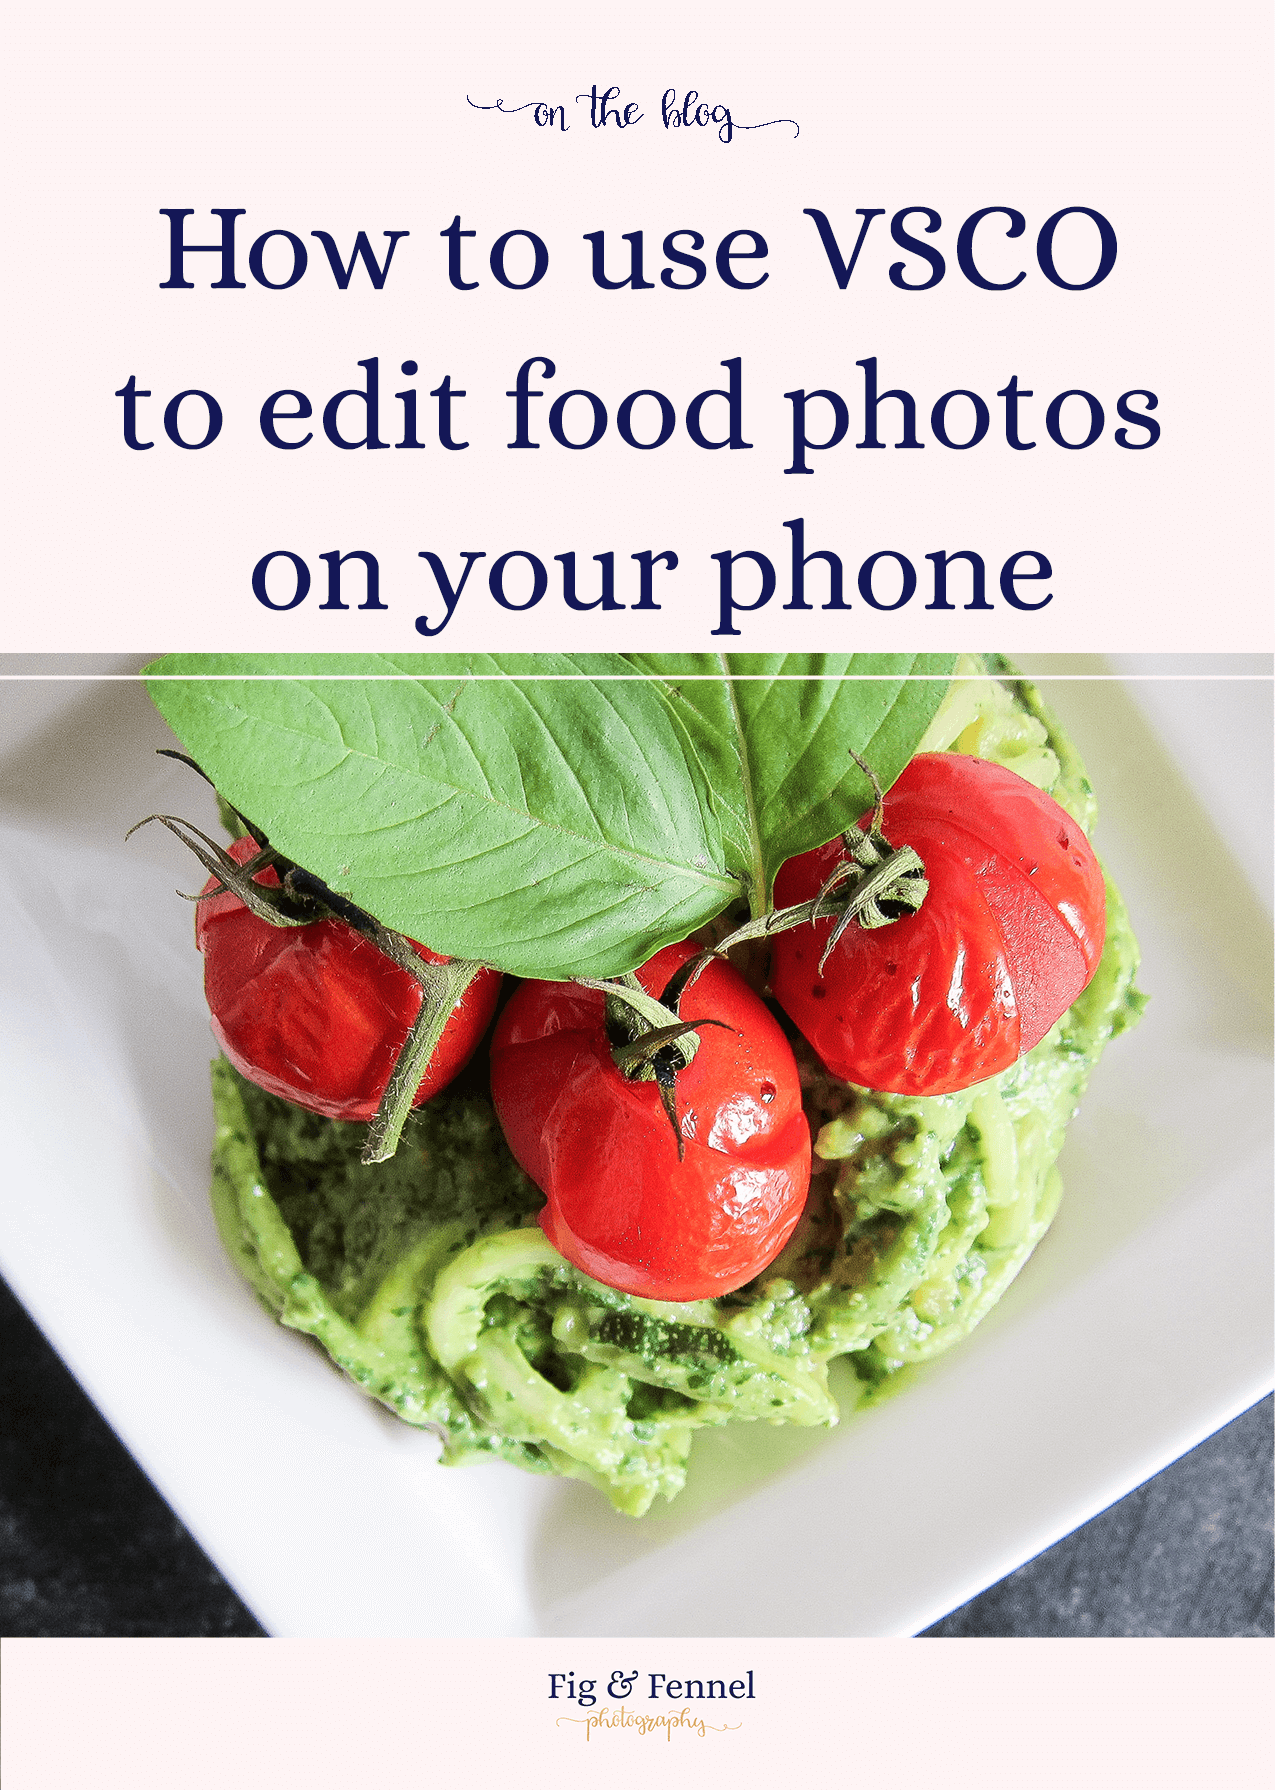 How to use VSCO to edit food photos on your phone